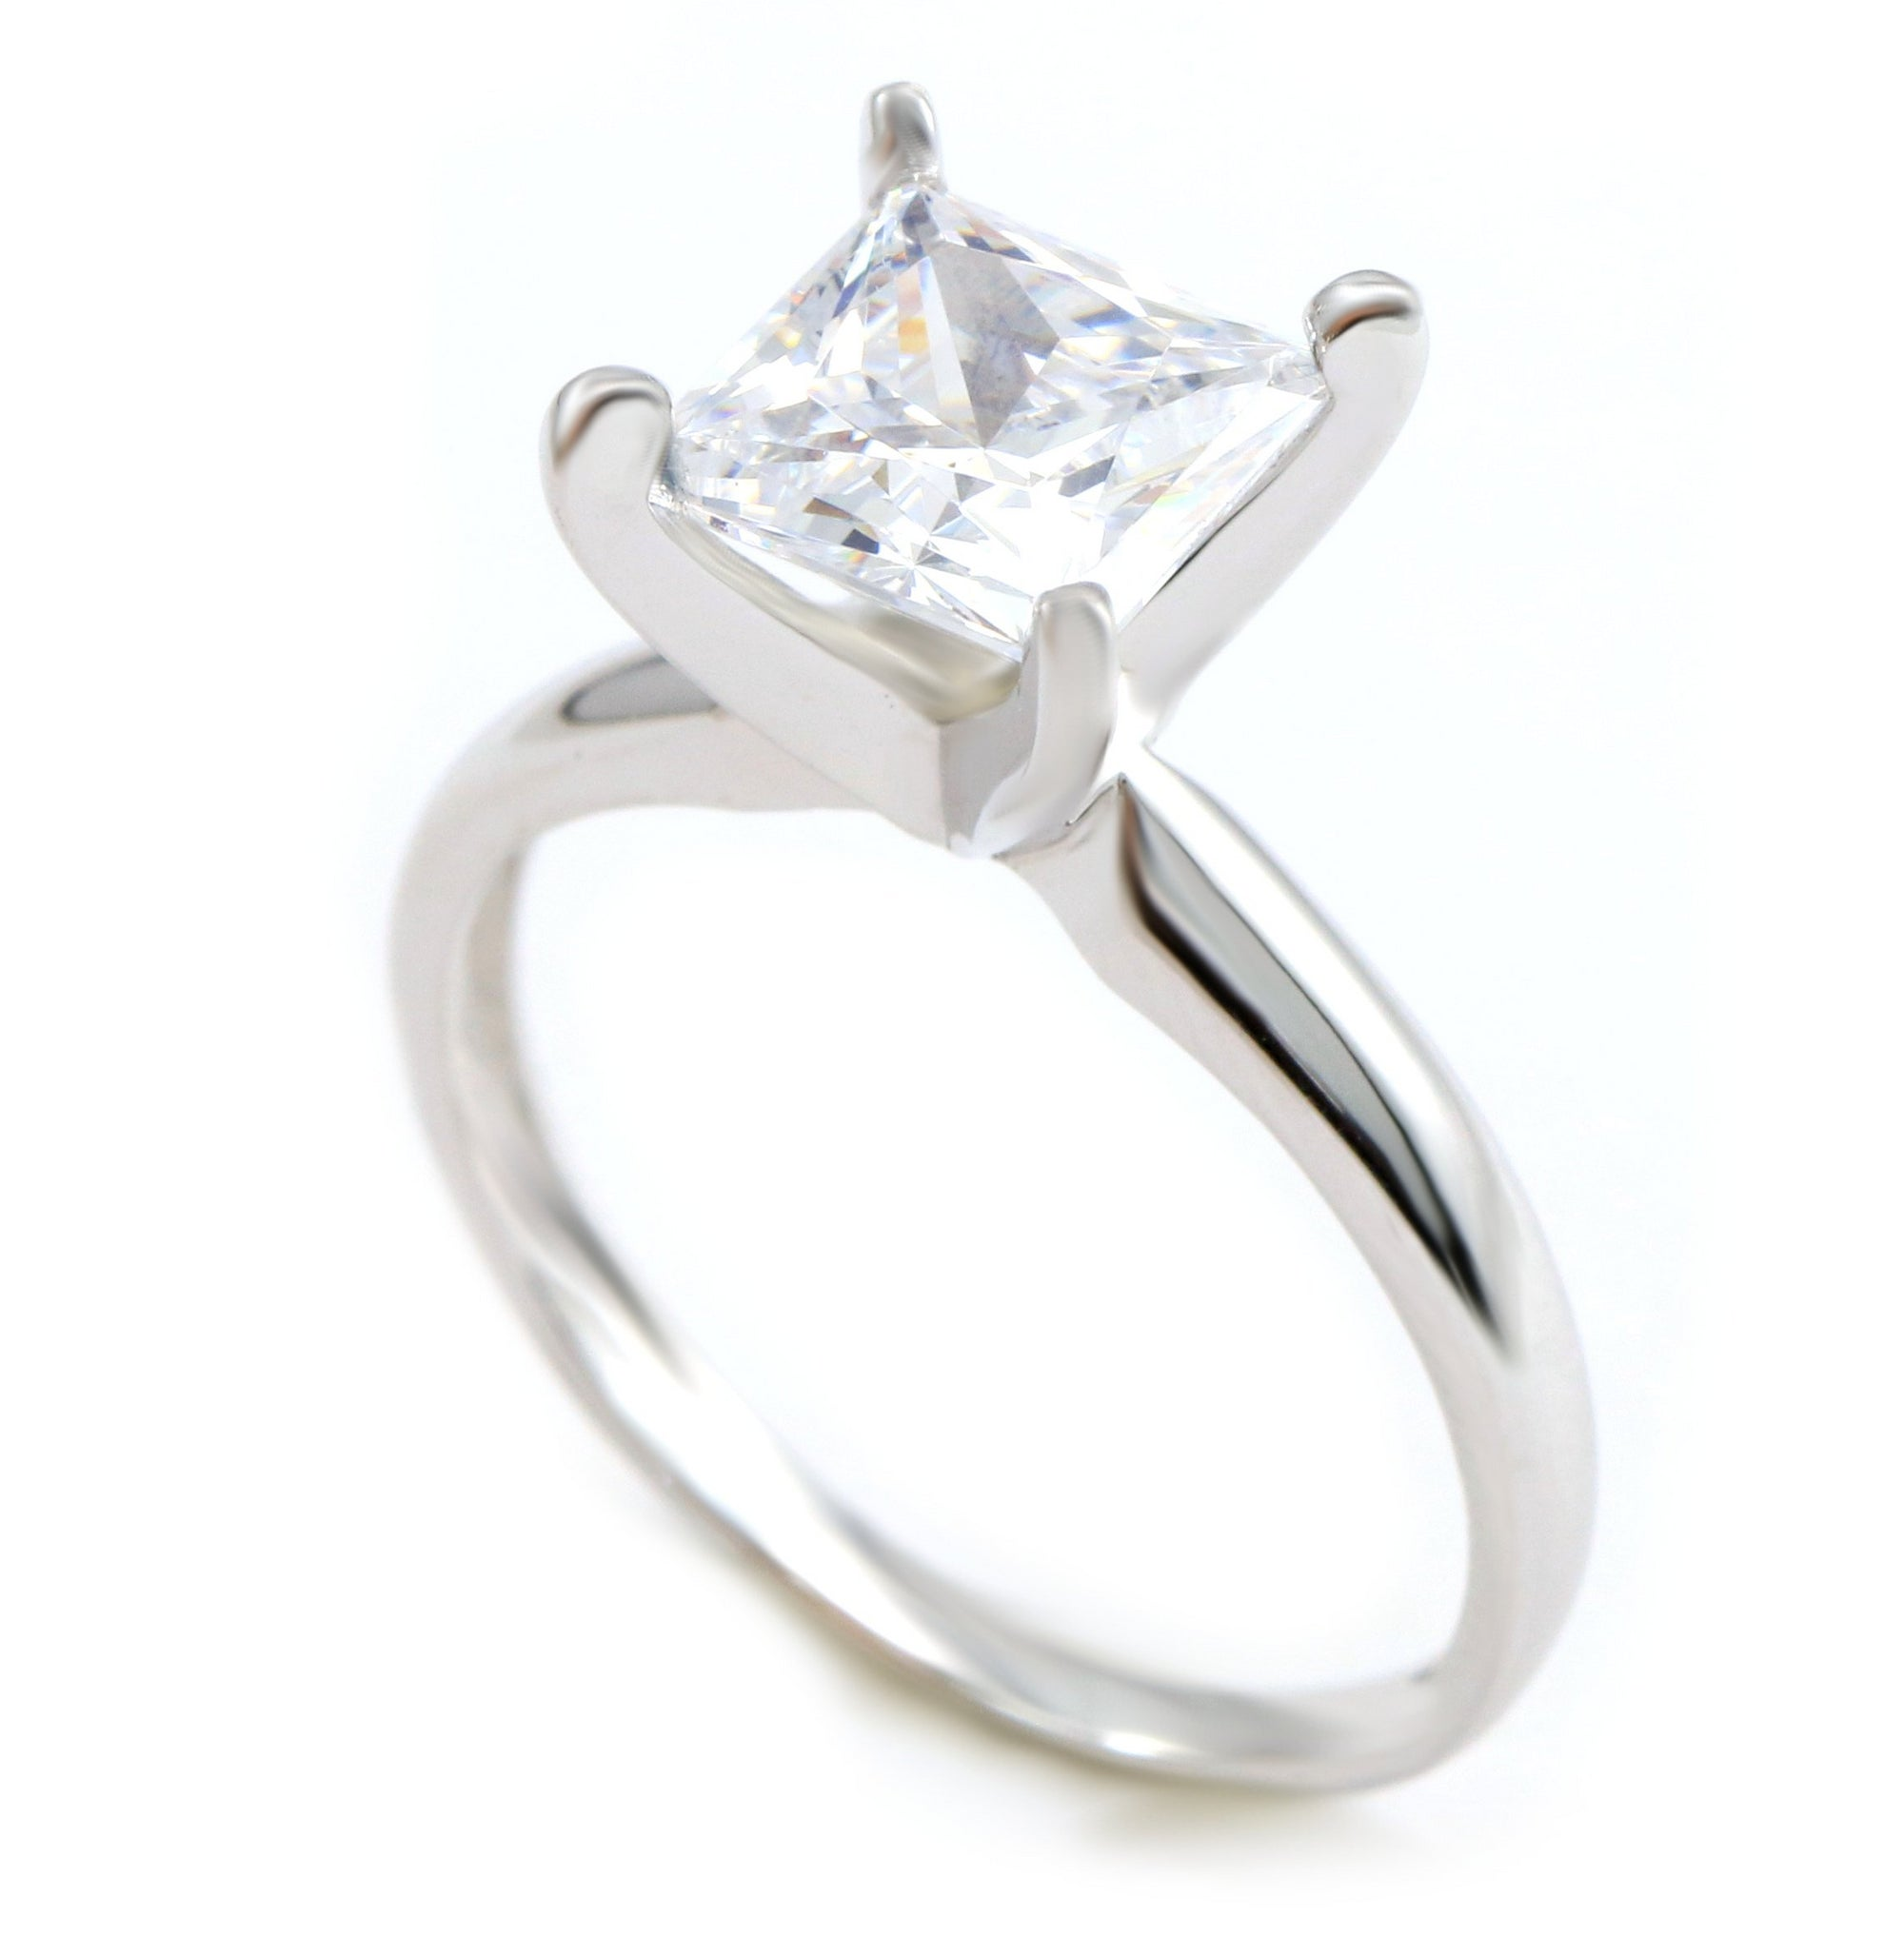 cd3064227ae66 1.5 Ct. Princess Cut Solitaire Solid 14K White Gold Engagement Ring